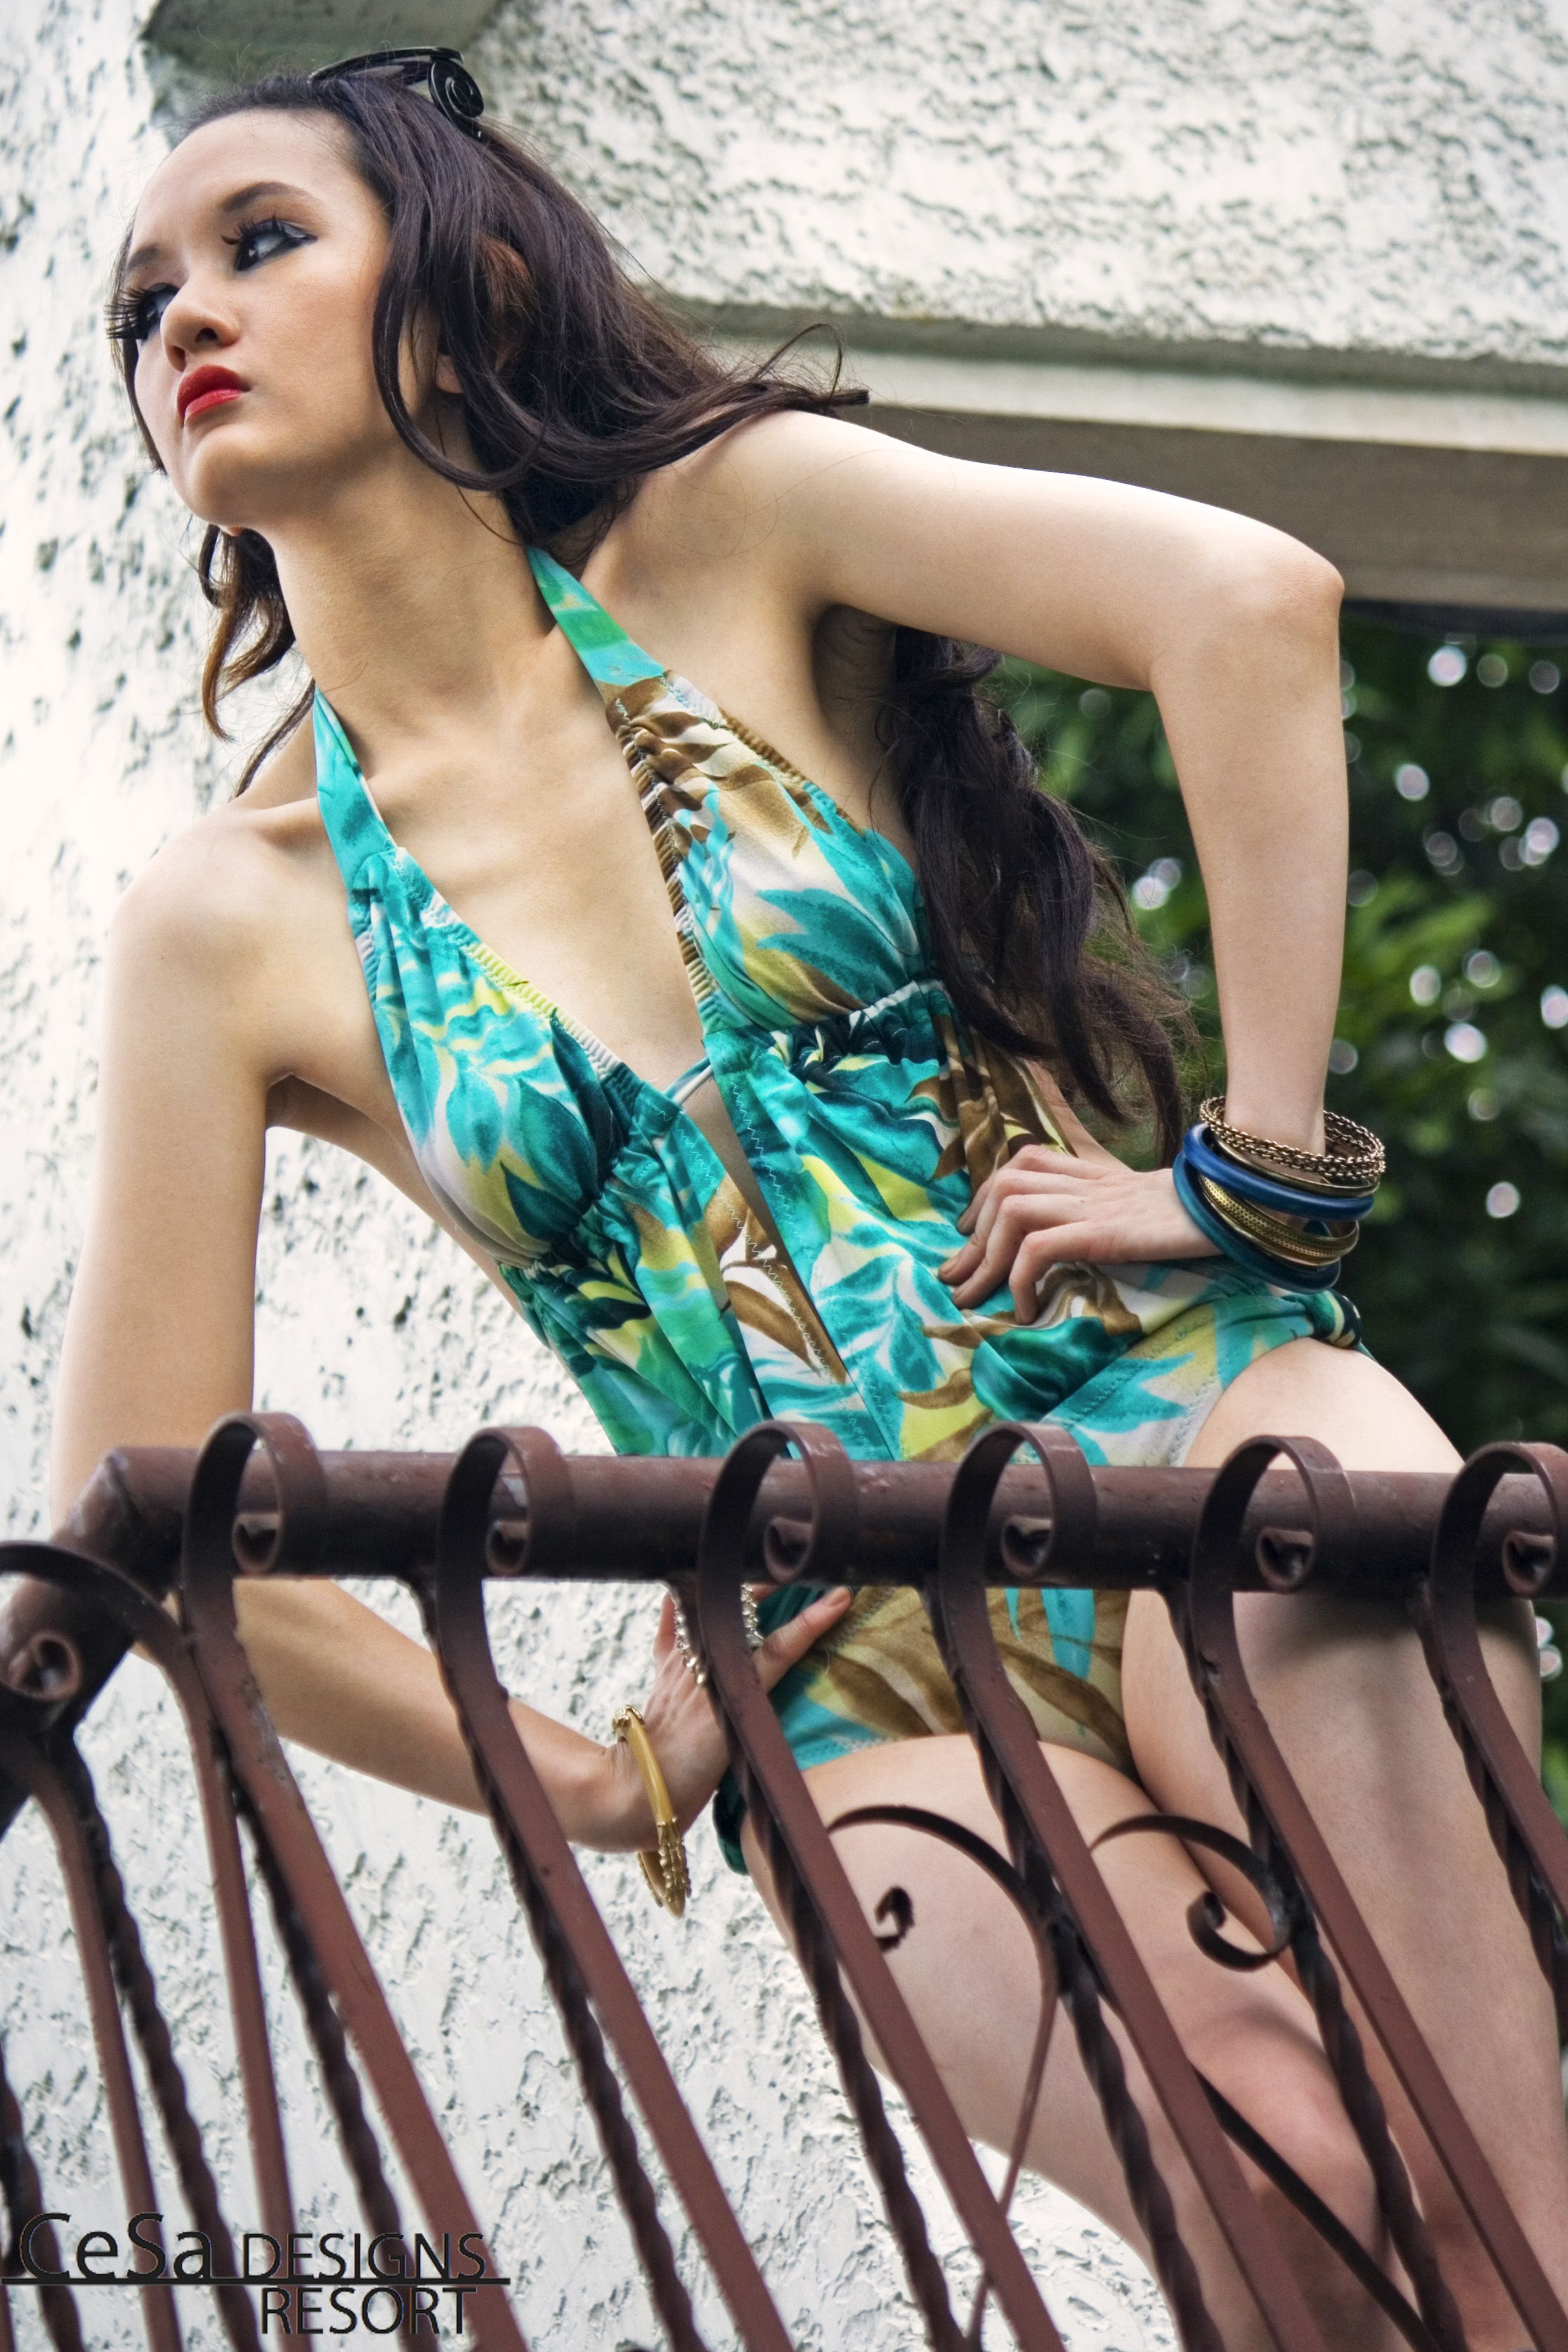 Order you Cesa Swimwear now     Basque 1.1 (SM003) P1600 (Limited quantity )   *Color: Leafy Green and Scarf Print in Pink Orange Black      *Size: XS, S, M    Photography: Inna Cristobal  Model: Hanna De Los Reyes  Asst Art: Jireh De Jose